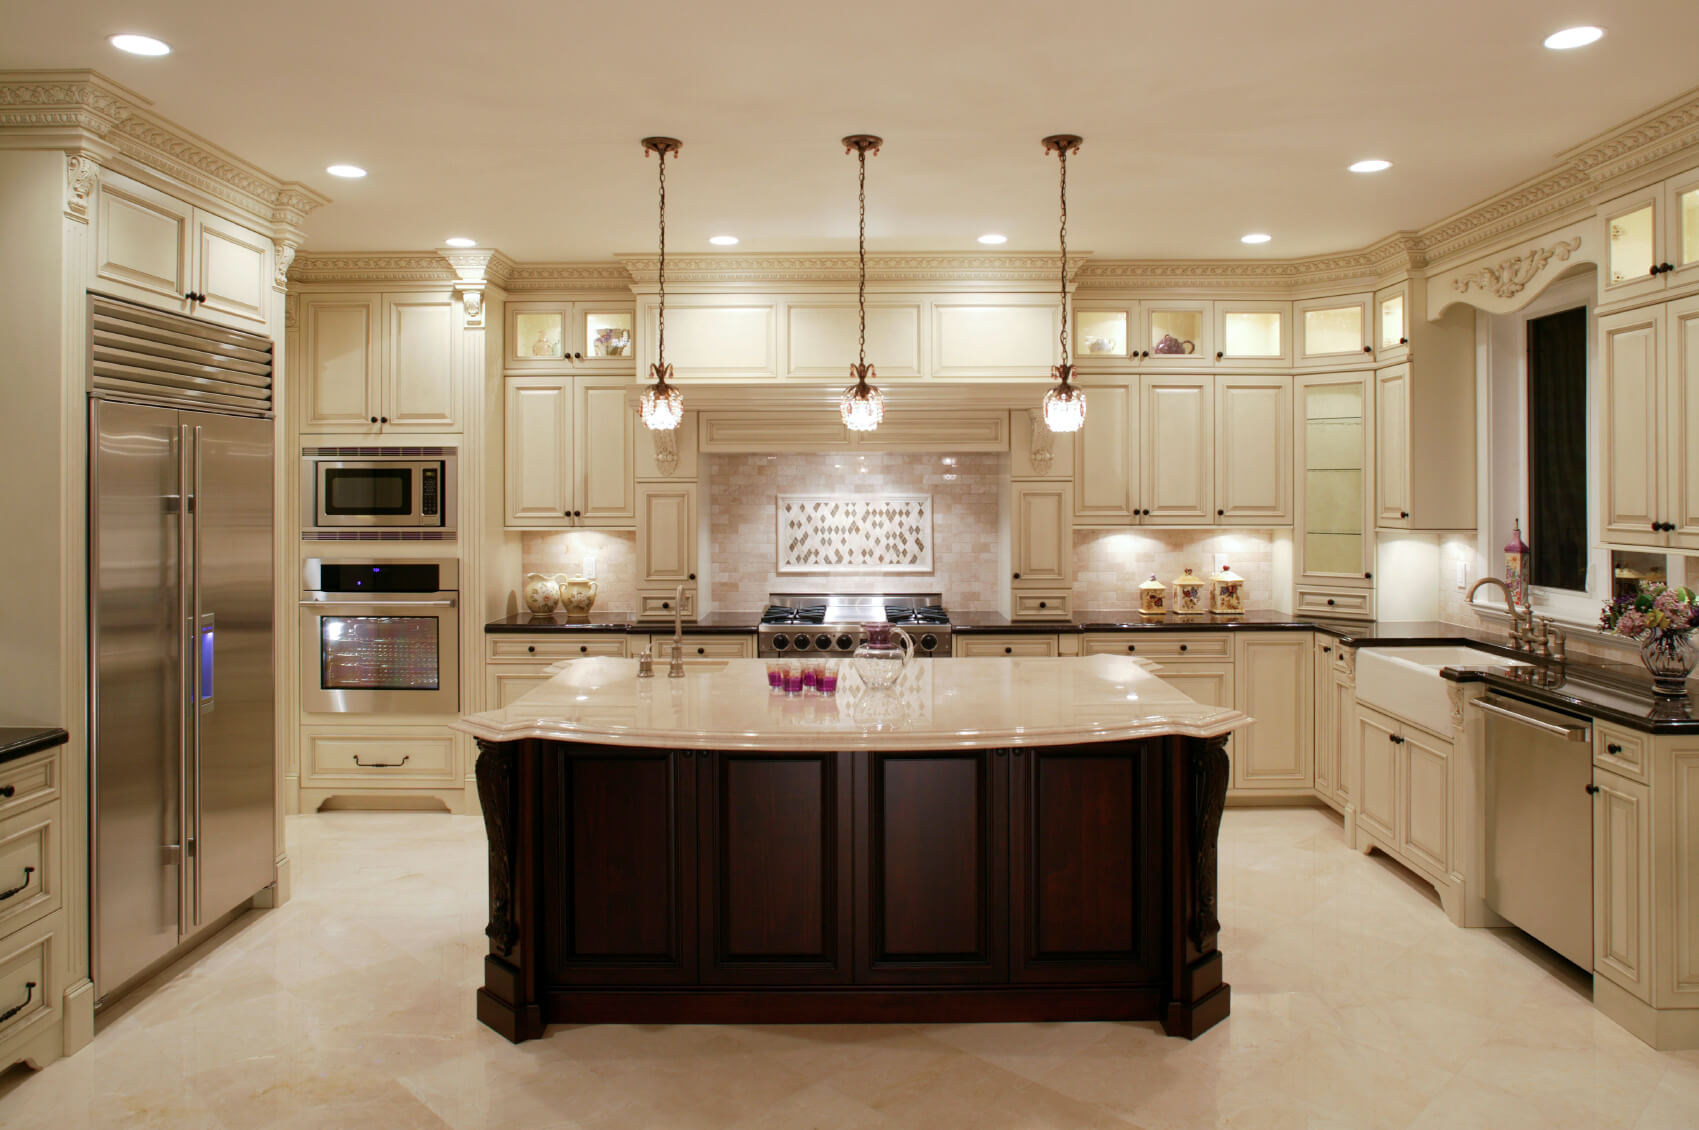 u shaped kitchen designs kitchen design gallery This U shaped kitchen centers around a large dark wood island with classic marble countertop